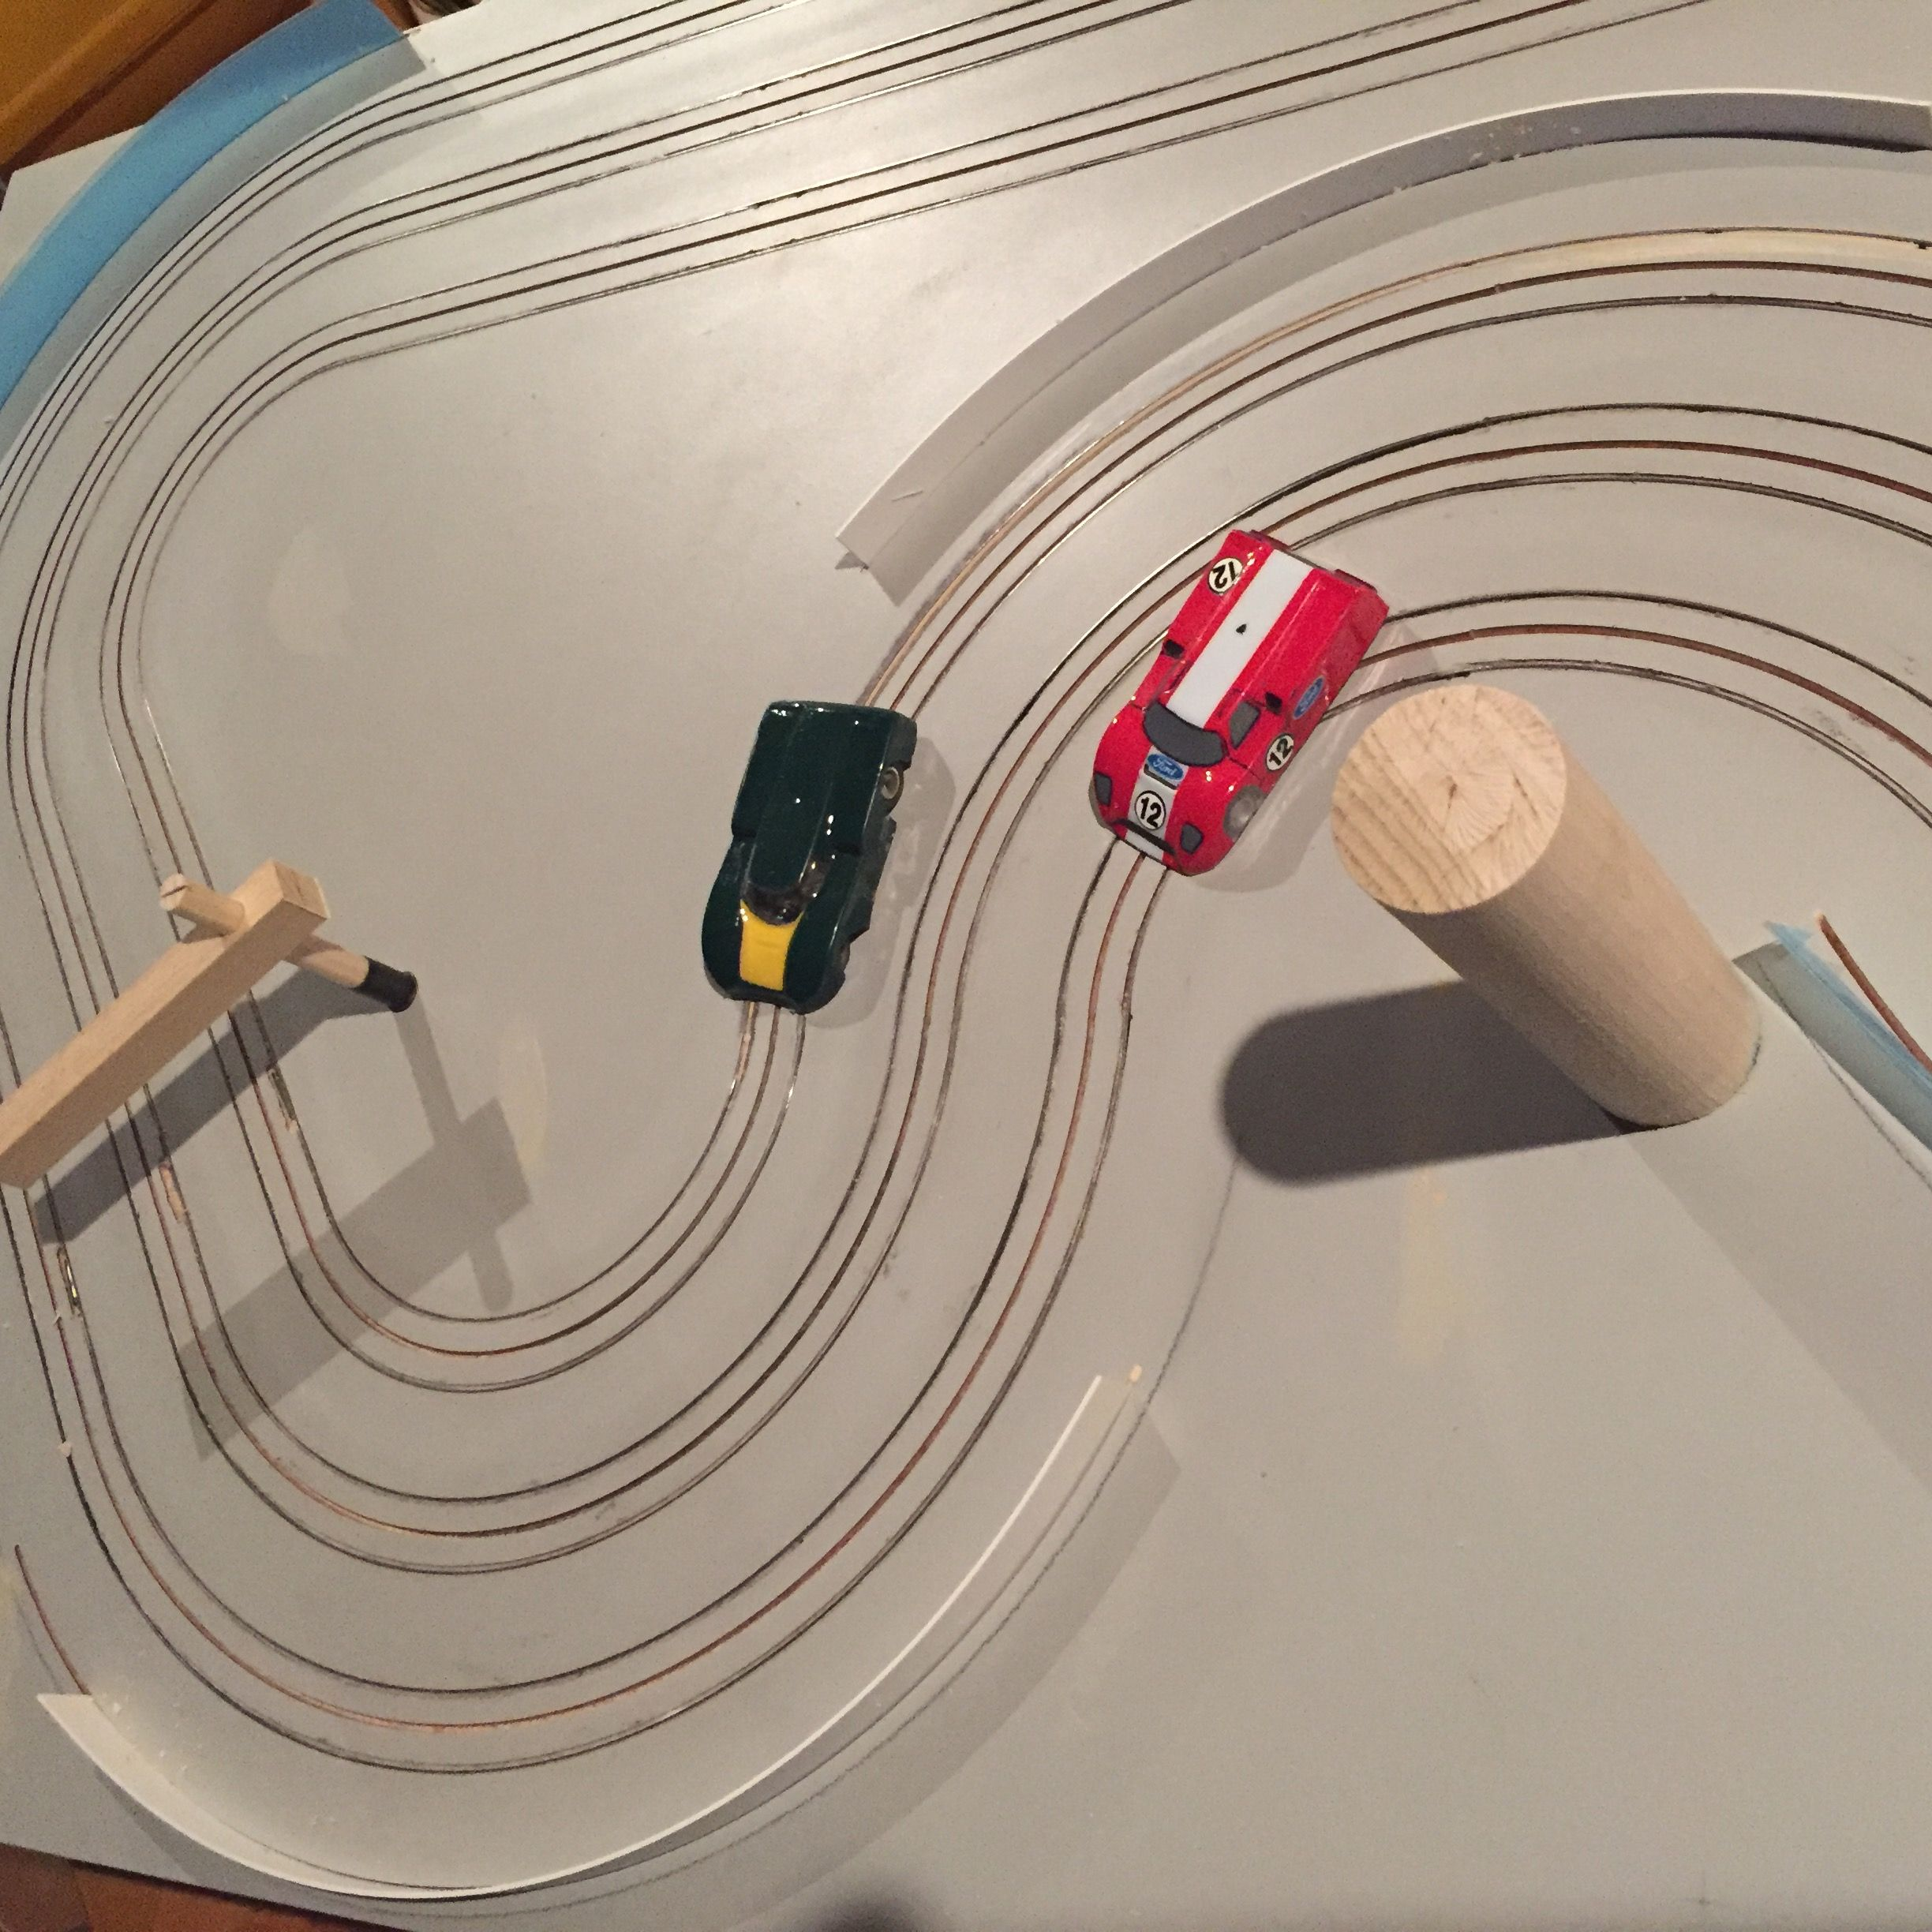 medium resolution of 3 lane small 2x4 routed ho slot car track